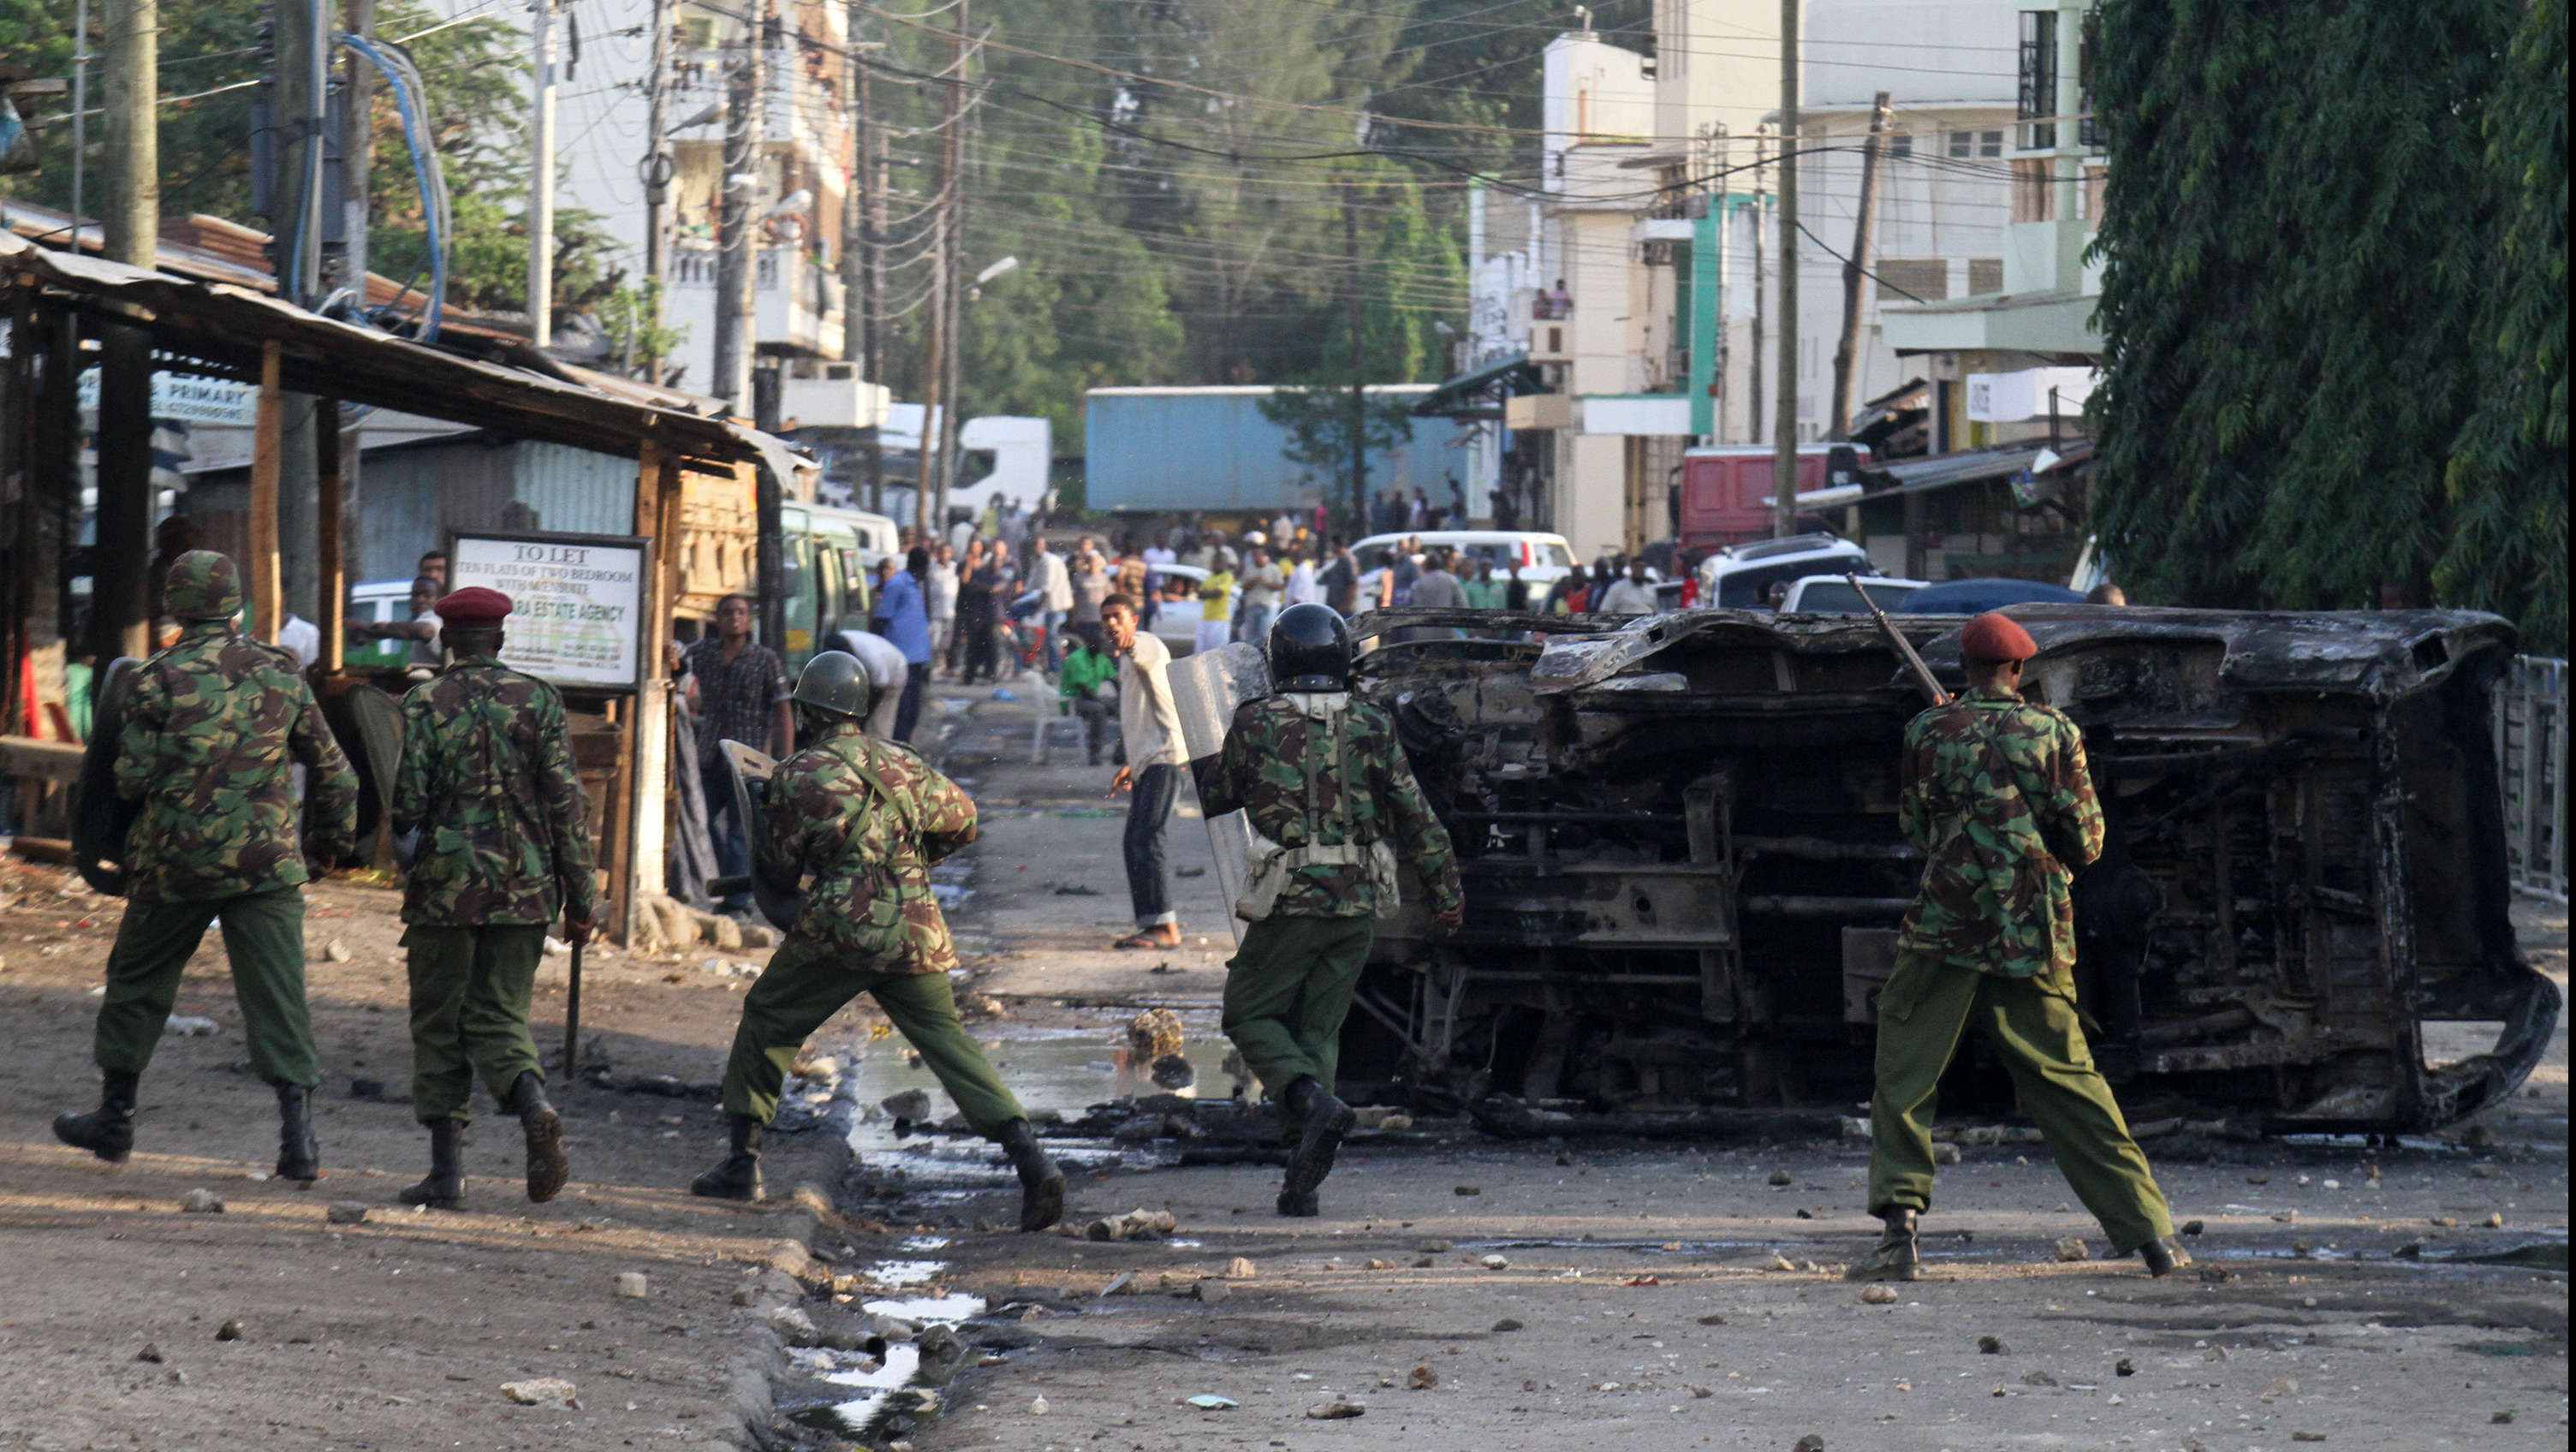 Kenyan security personnel engaging in a street fight with rowdy youths outside the Masjid Musa Mosque in Majengo, Mombasa